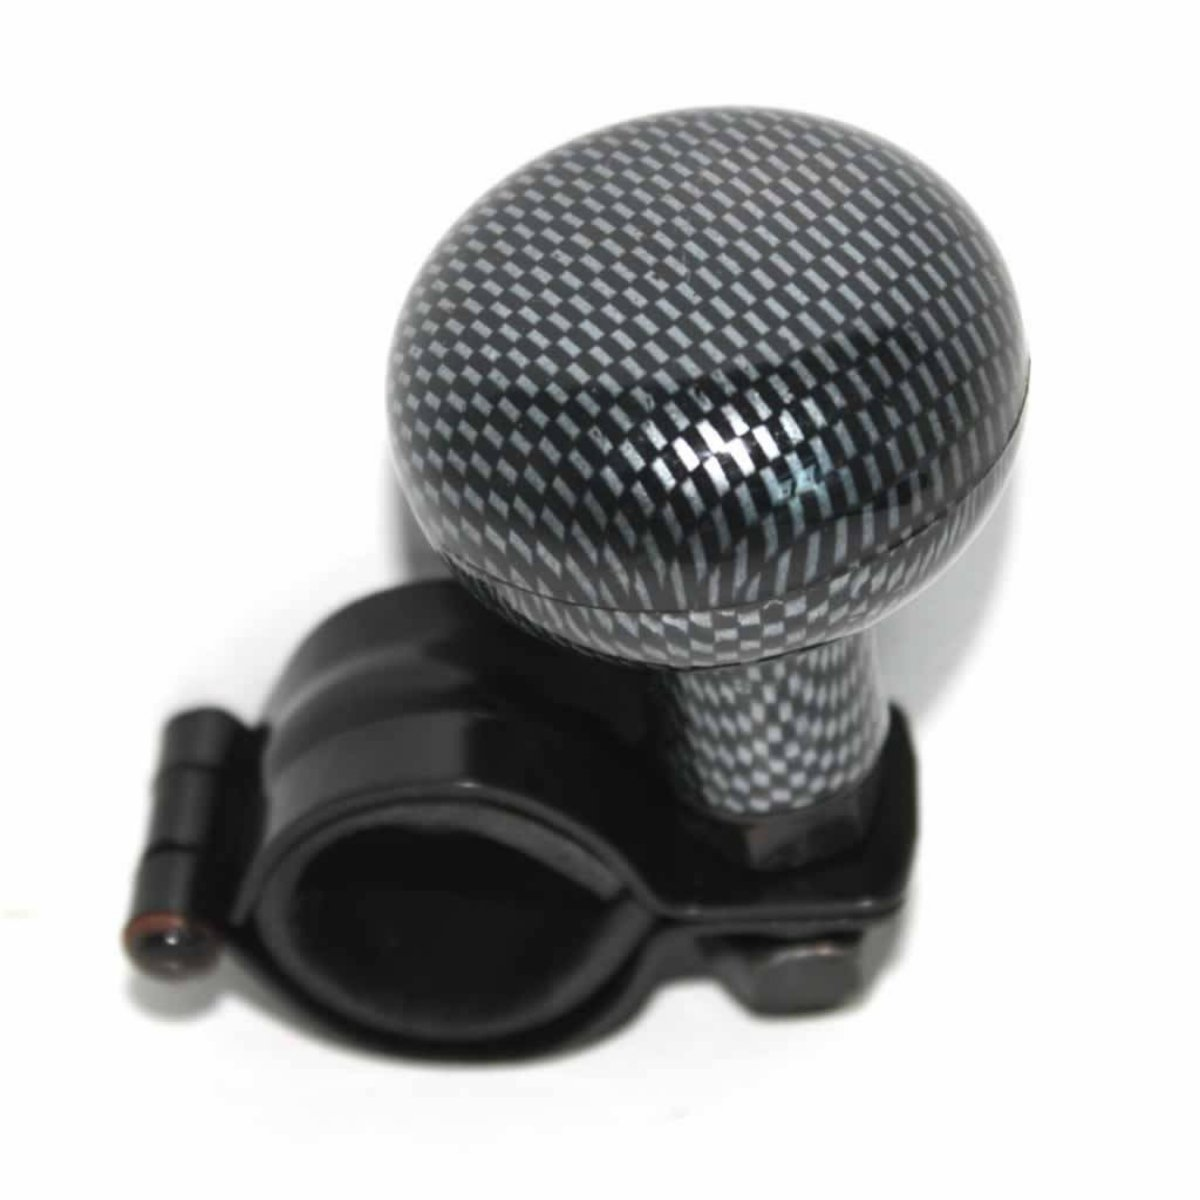 XtremeAuto® CARBON LOOK Universal Steering Wheel Knob/Brodie Knob For Car, Van, Truck, Tractor, Boat etc. XtremeAuto®